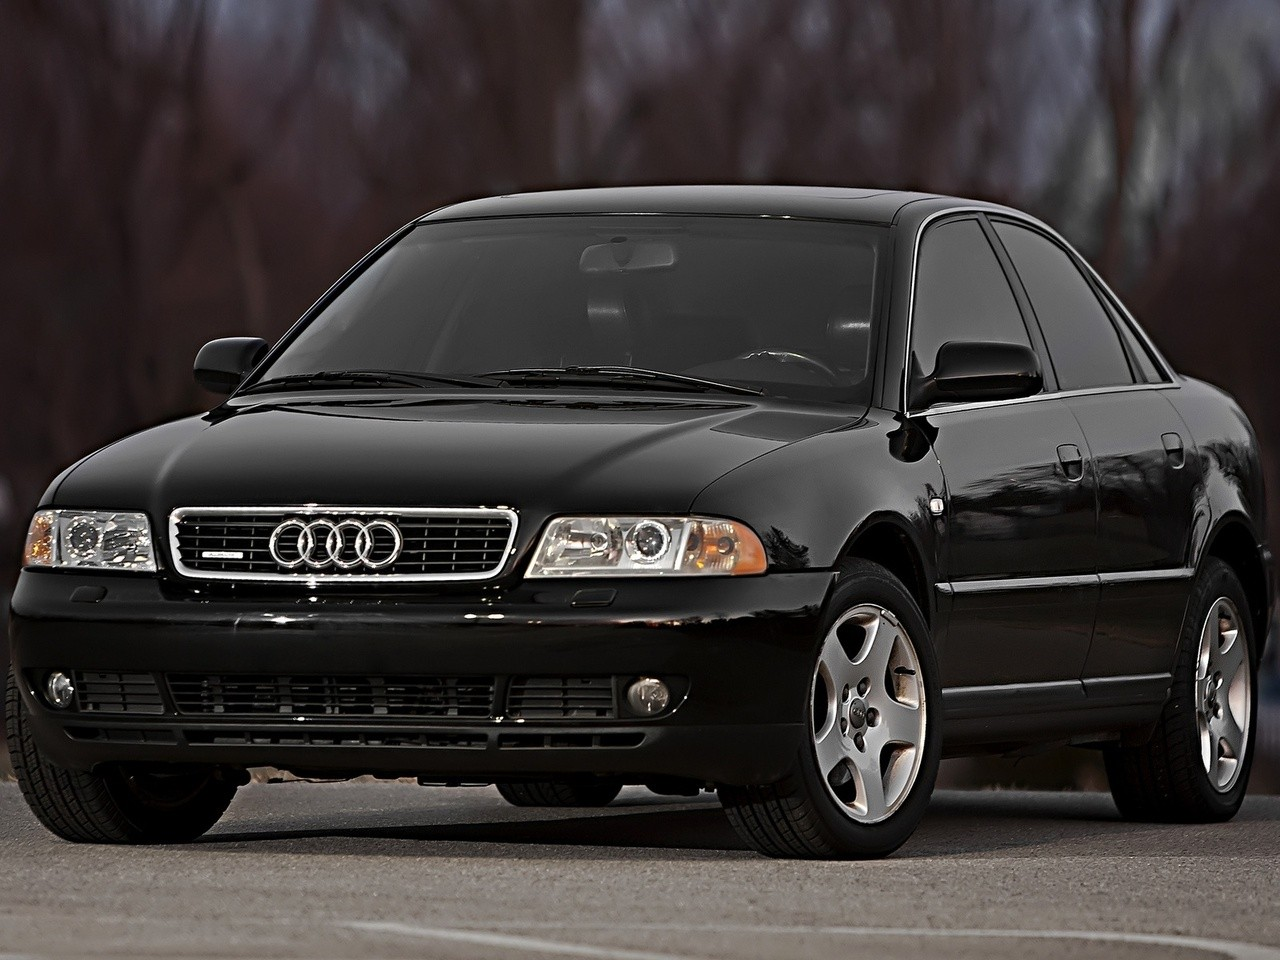 audi a4 specs 1994 1995 1996 1997 1998 1999 2000 2001 autoevolution. Black Bedroom Furniture Sets. Home Design Ideas